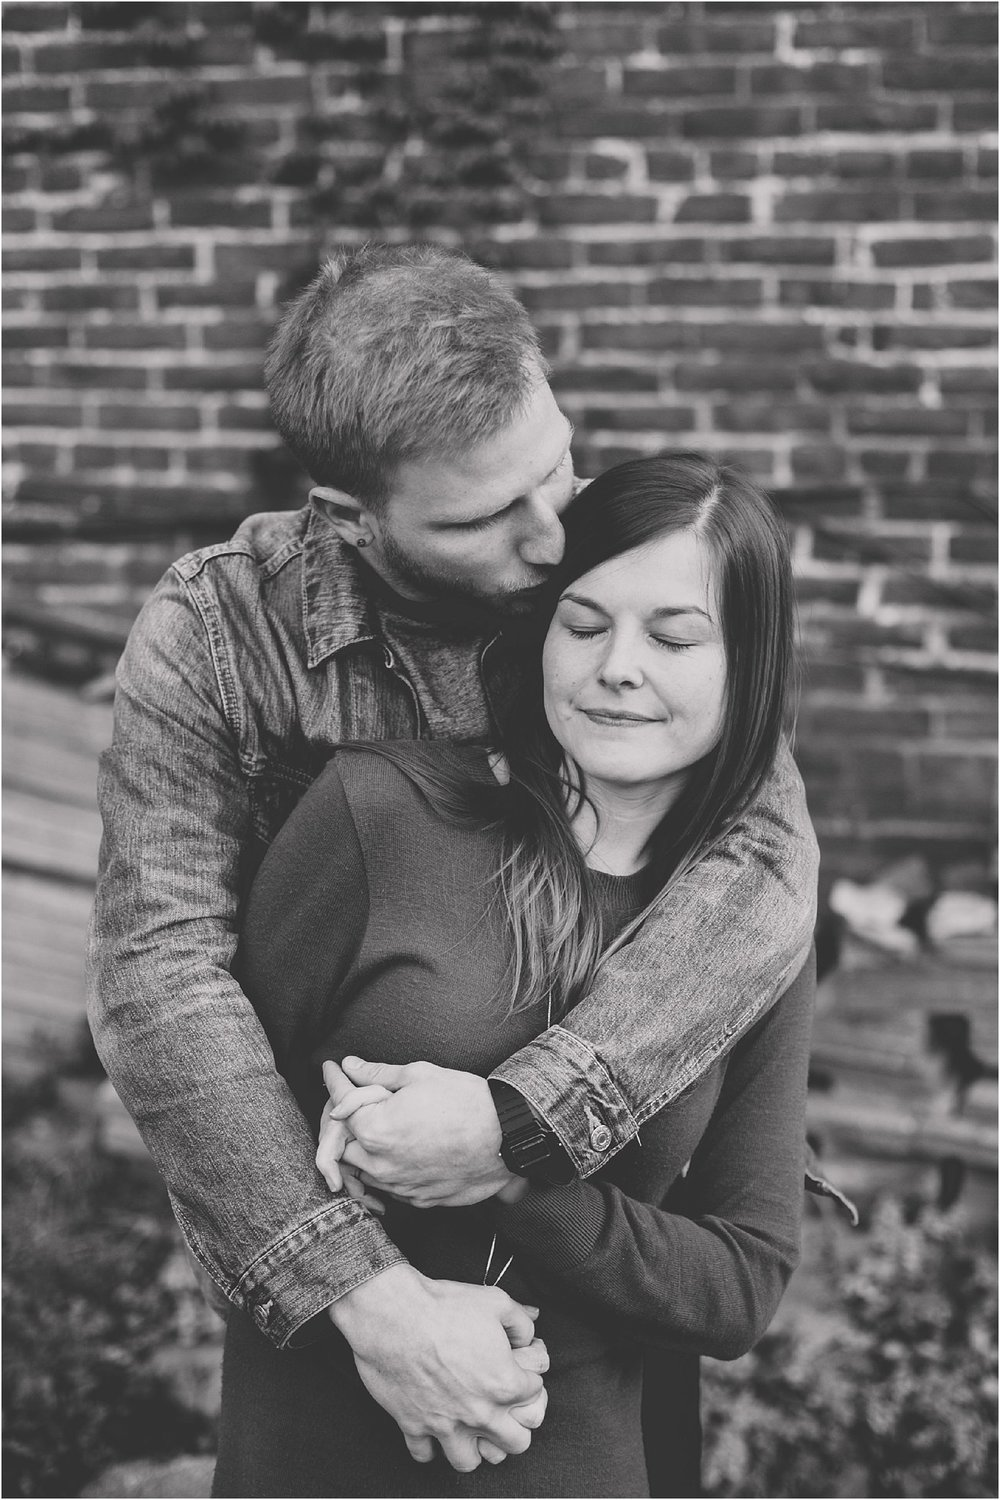 PattengalePhotography_Andrew&Allison_Soulard_SaintLouis_Engagement_Urban_Hipster_Boho_Wedding_Photographer_Missouri_Couple_PattengalePhotography__0040.jpg